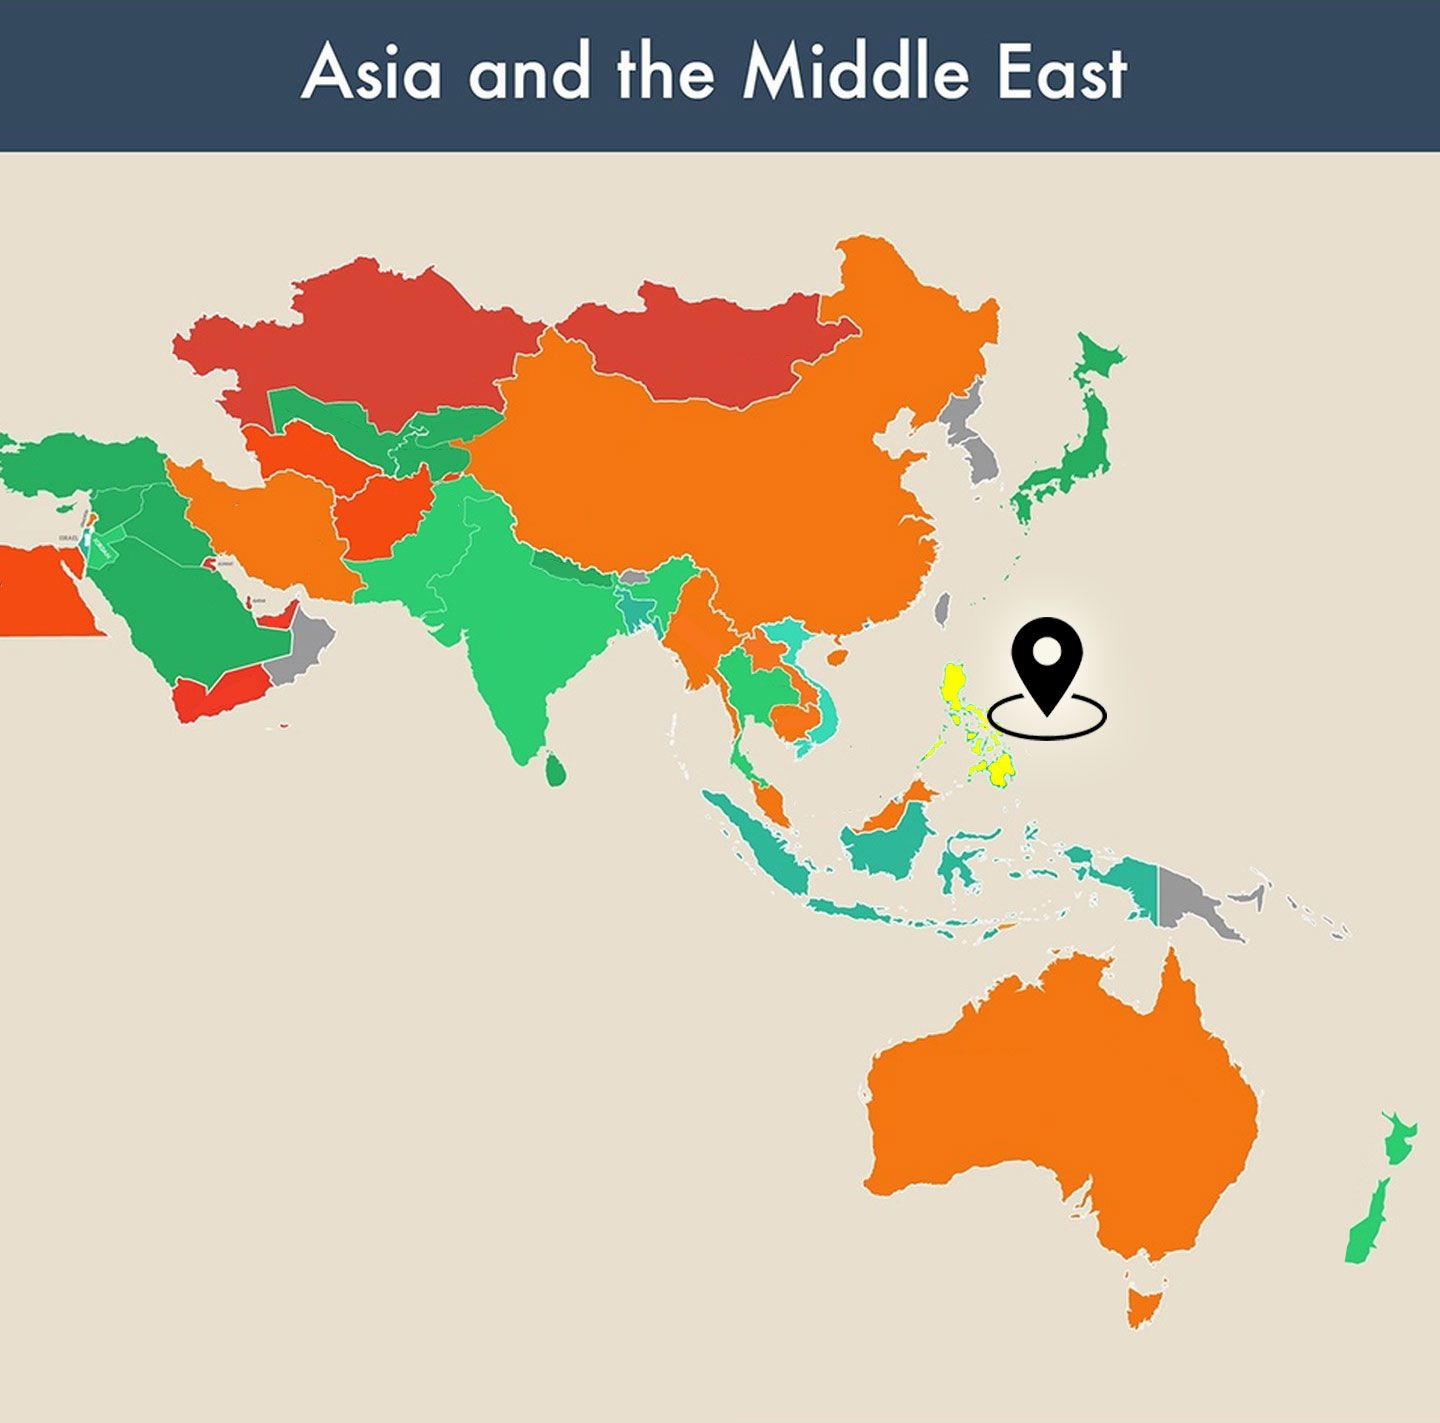 countries of the world empty map - philippines image